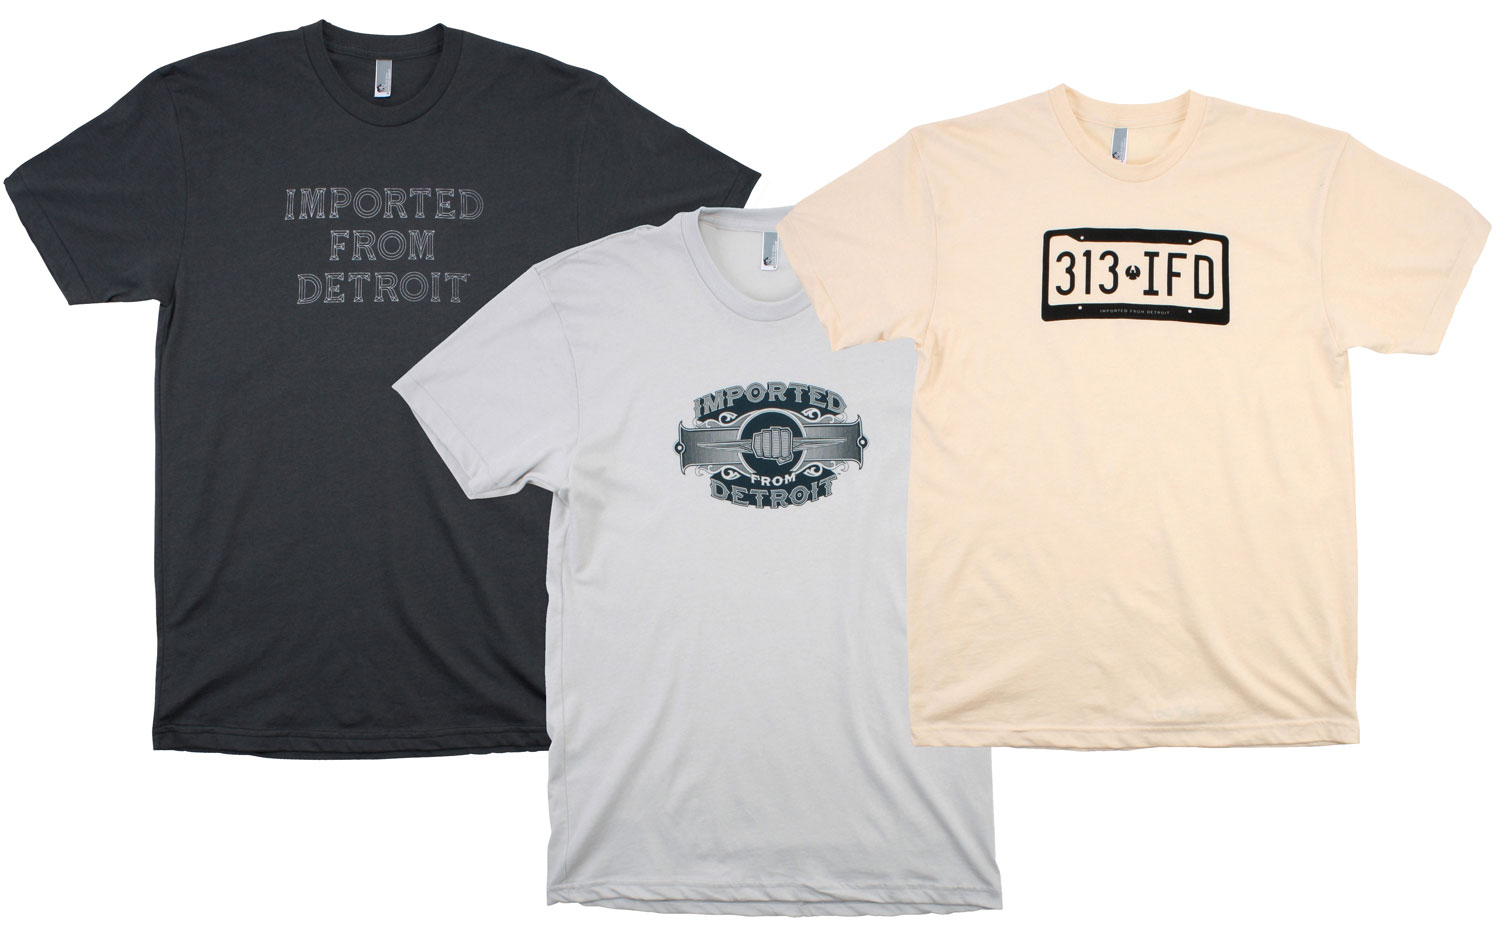 Imported From Detroit Shirts Feb 20121